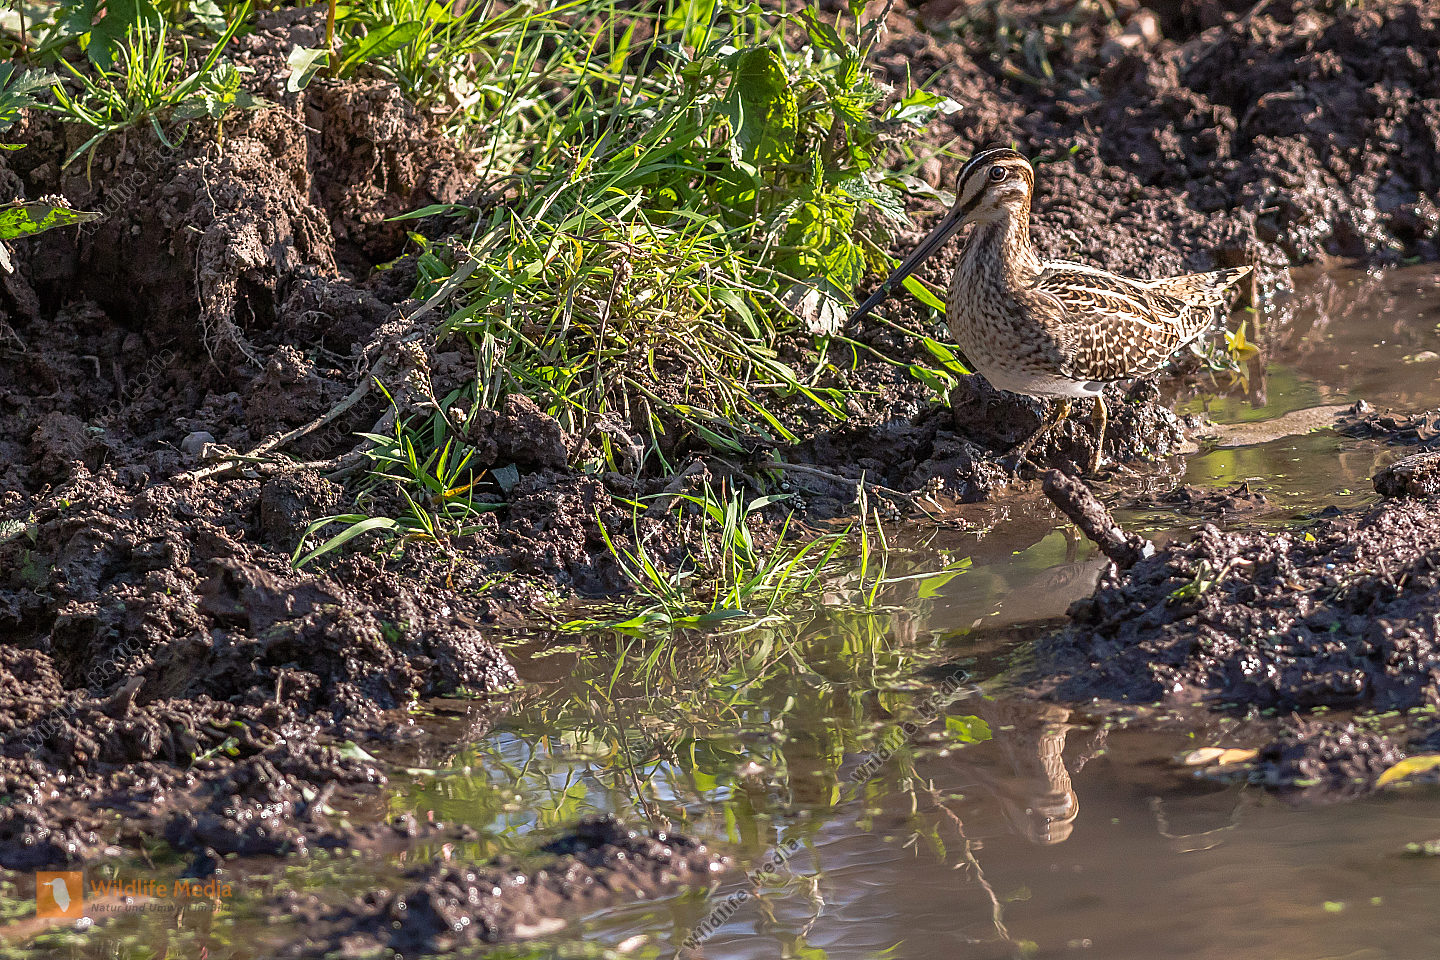 A common snipe in Beeder Bruch is searching for fodder